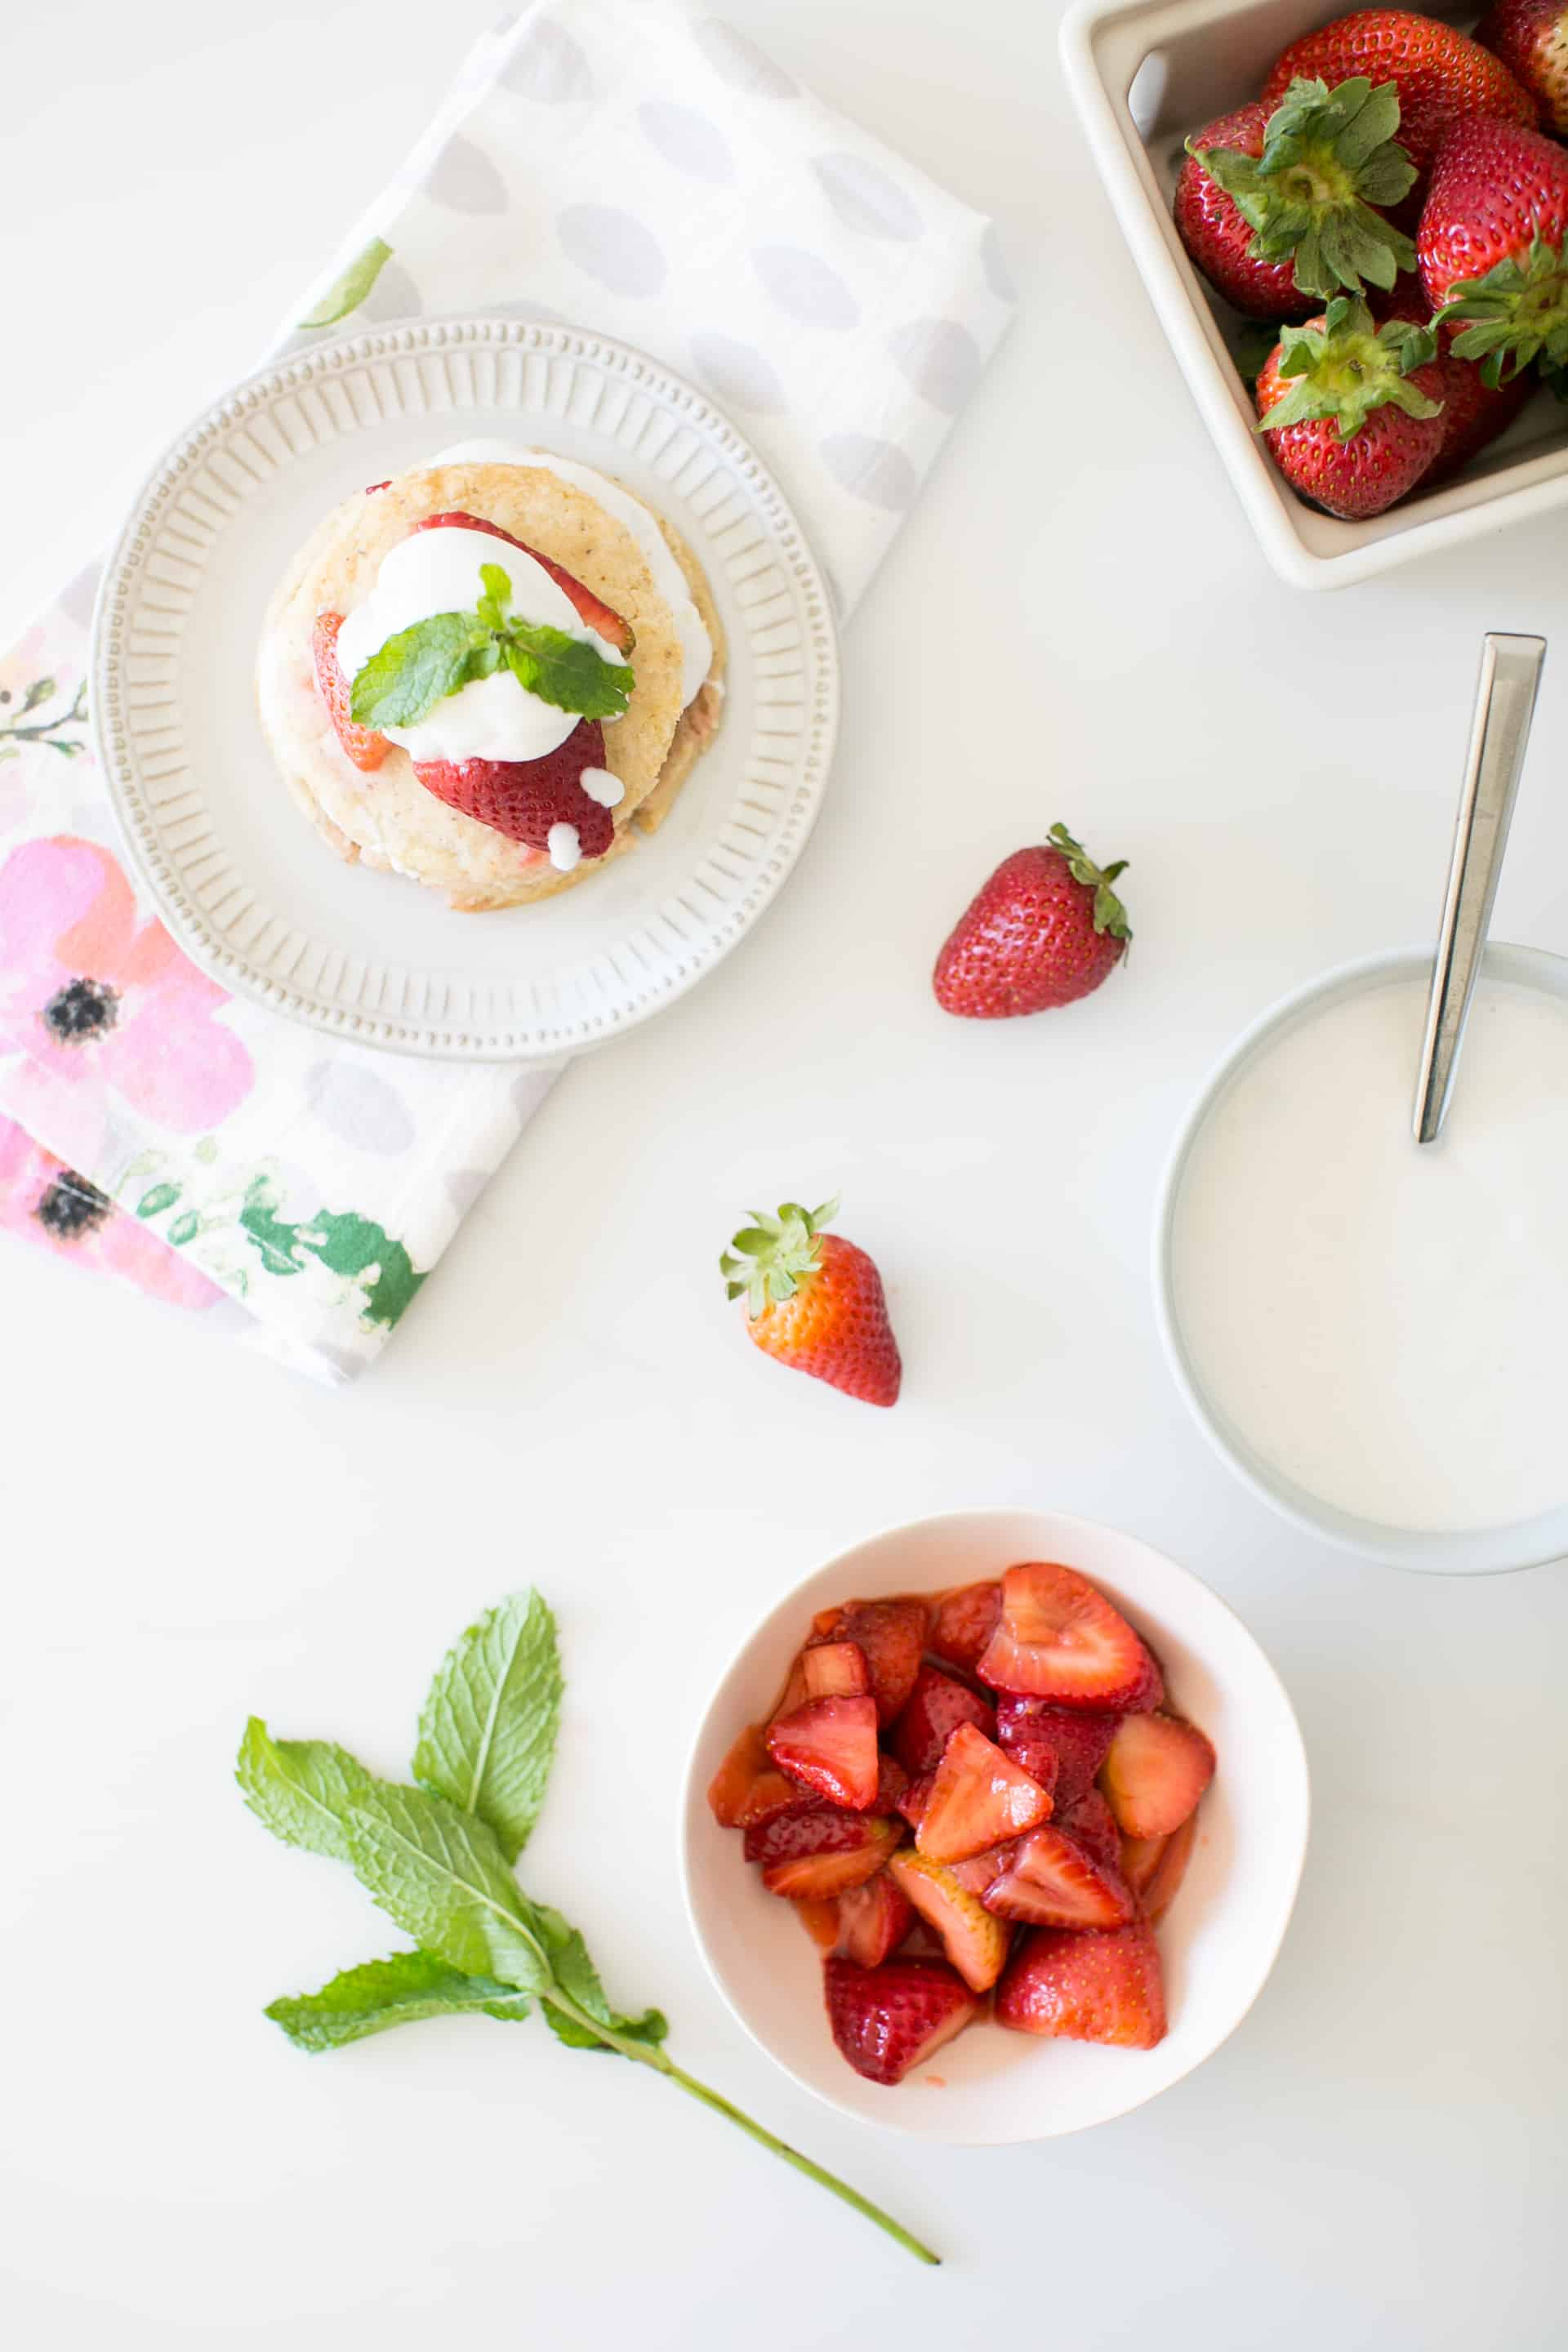 This Strawberry Maca Shortcake Will Be Your Go-To Summer Dessert